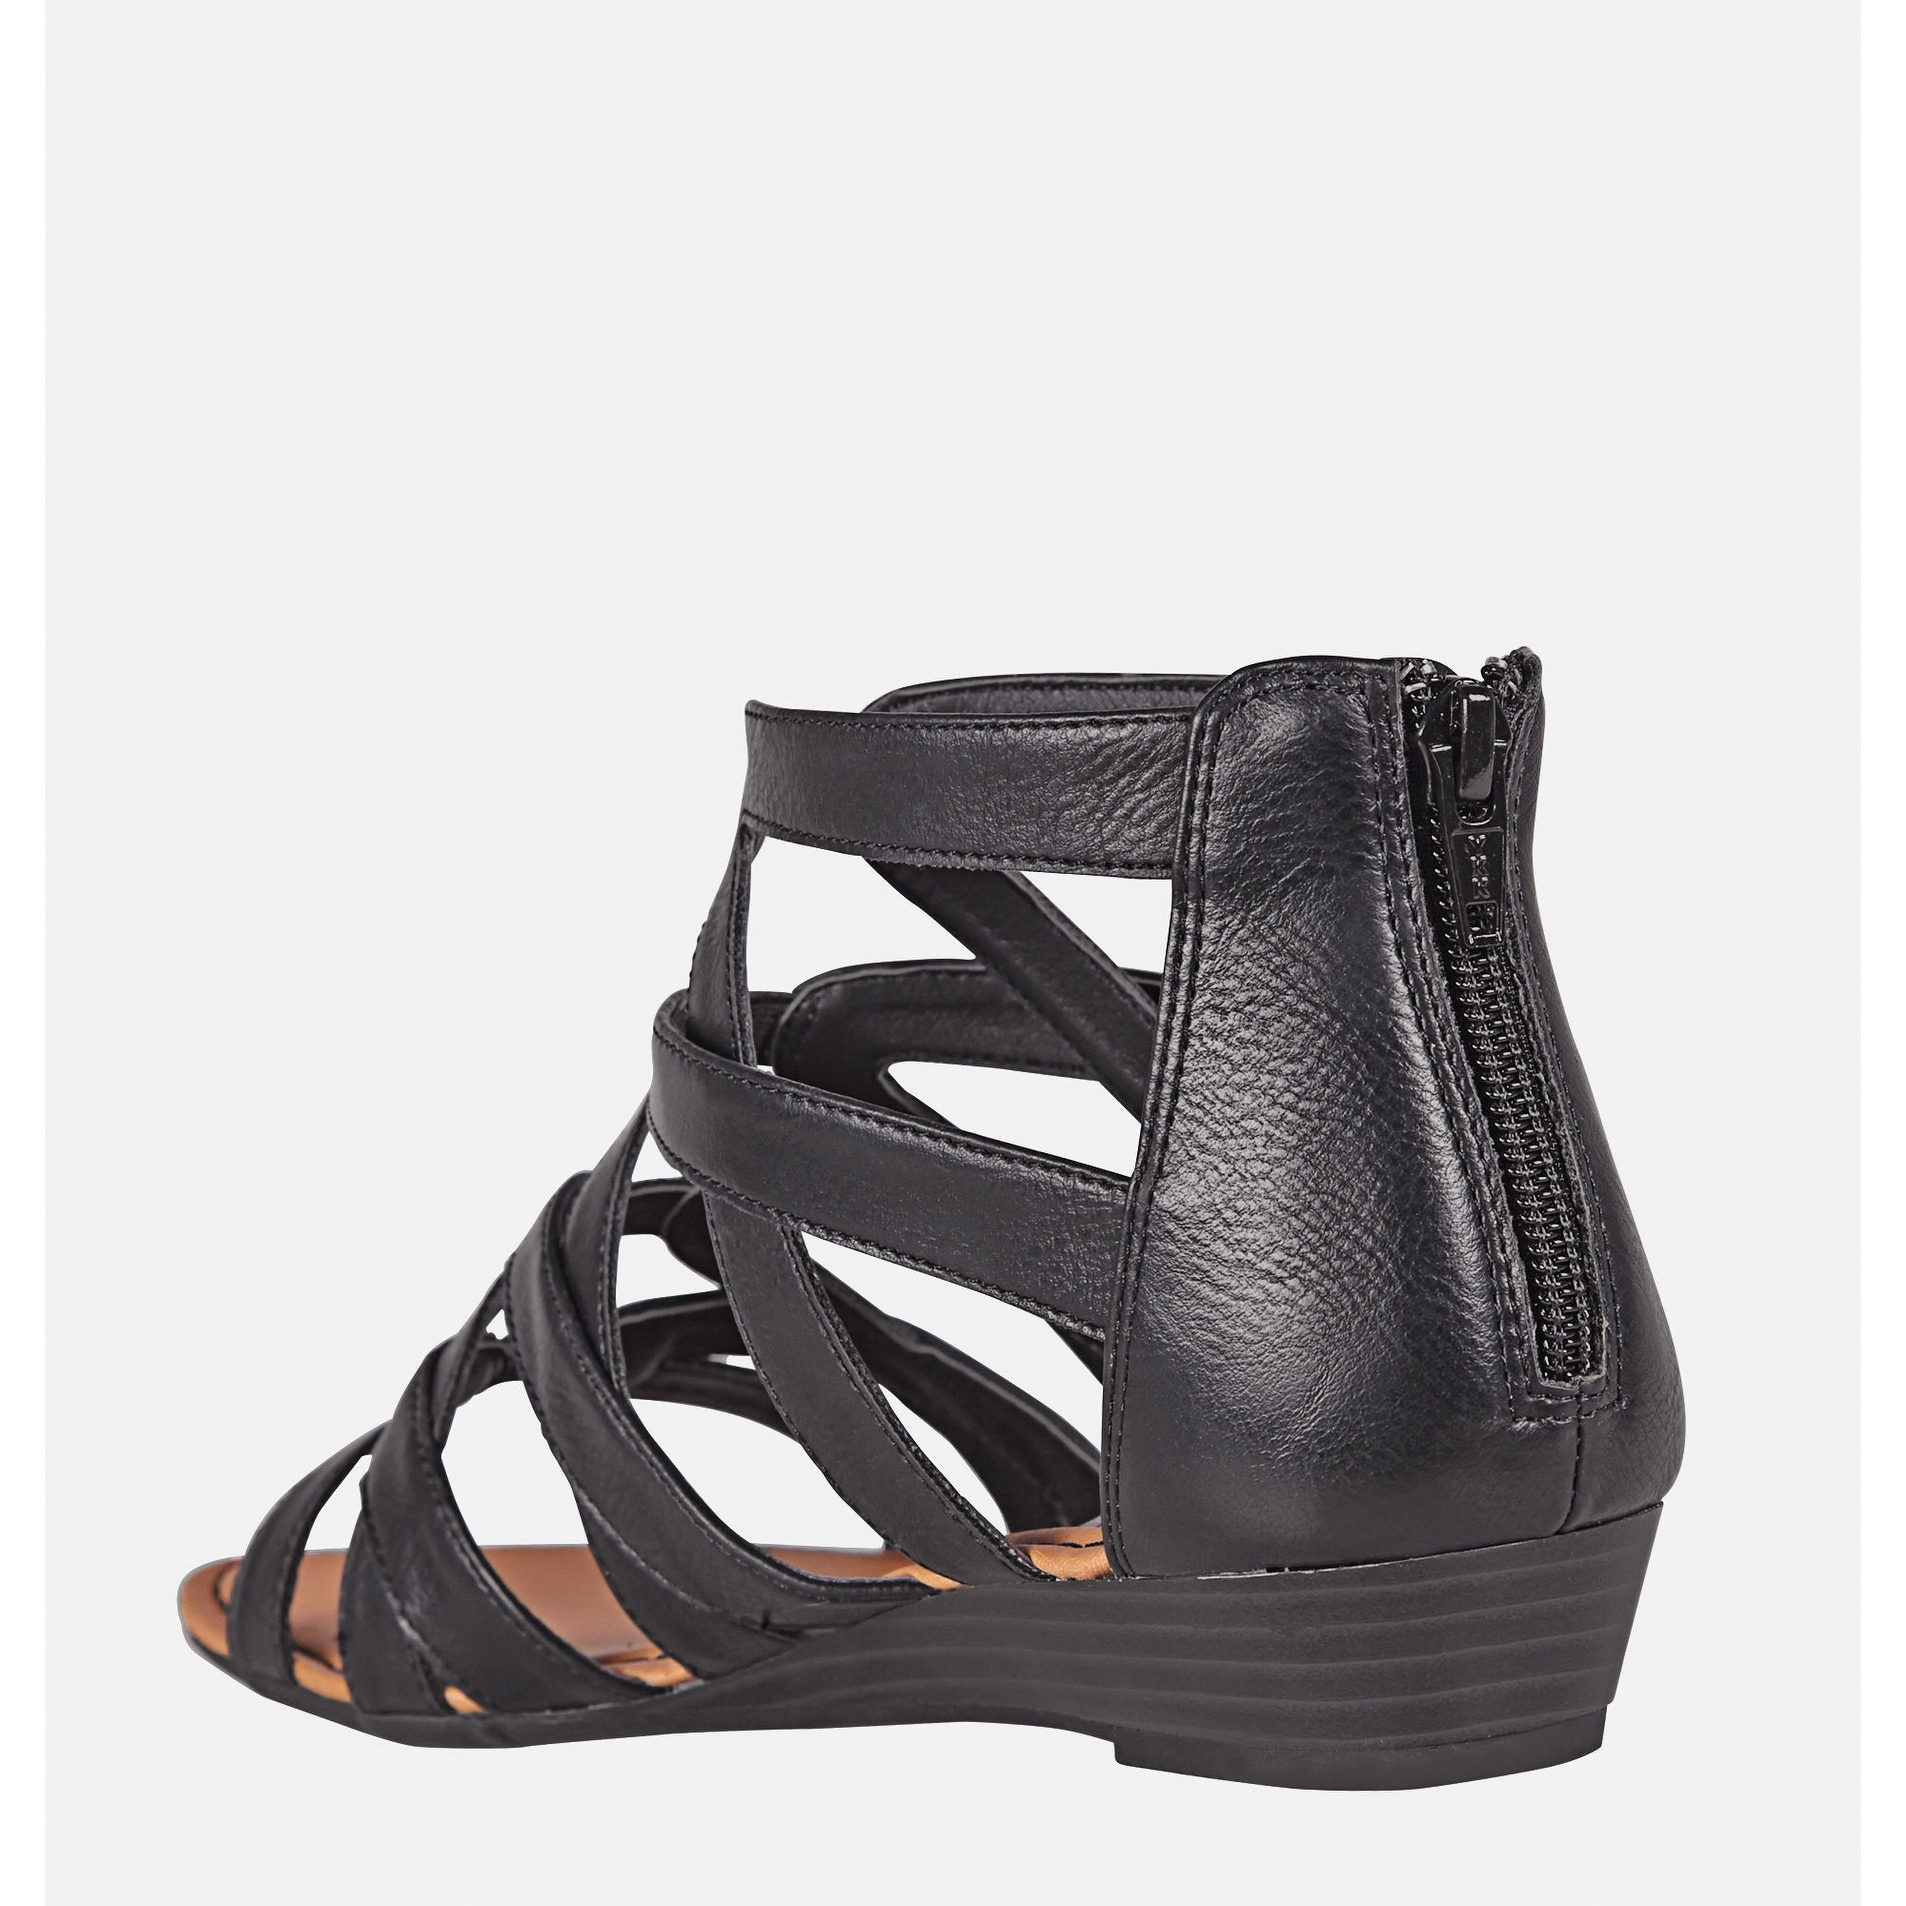 47f837c54 Shop AVENUE Women's Gina Gladiator Sandal - Free Shipping On Orders Over  $45 - Overstock - 27568543